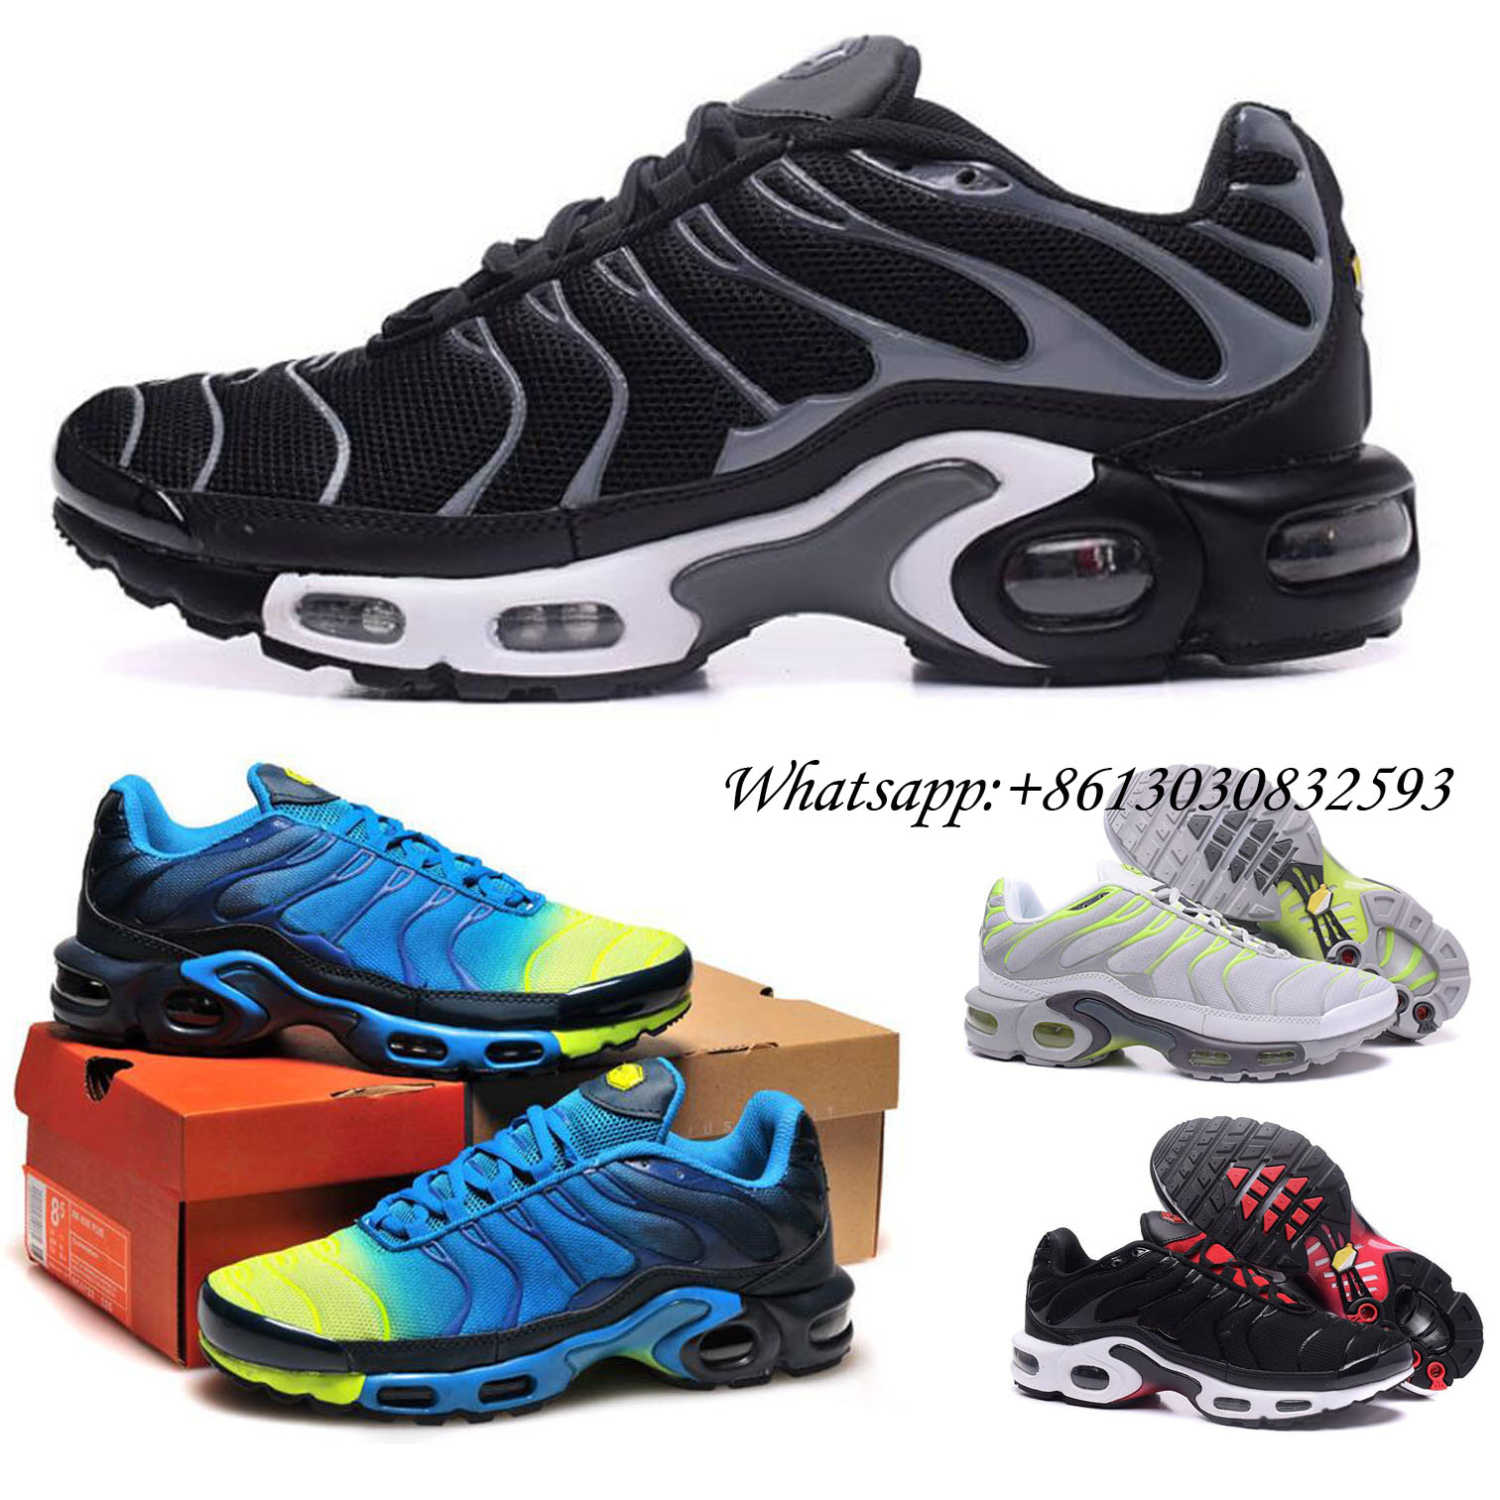 Tn requin homme leder plus Mann Laufschuhe 95 outdoor Turnschuhe zapatos homme 350 boost Atmungs trainer 97 98 Chaussures